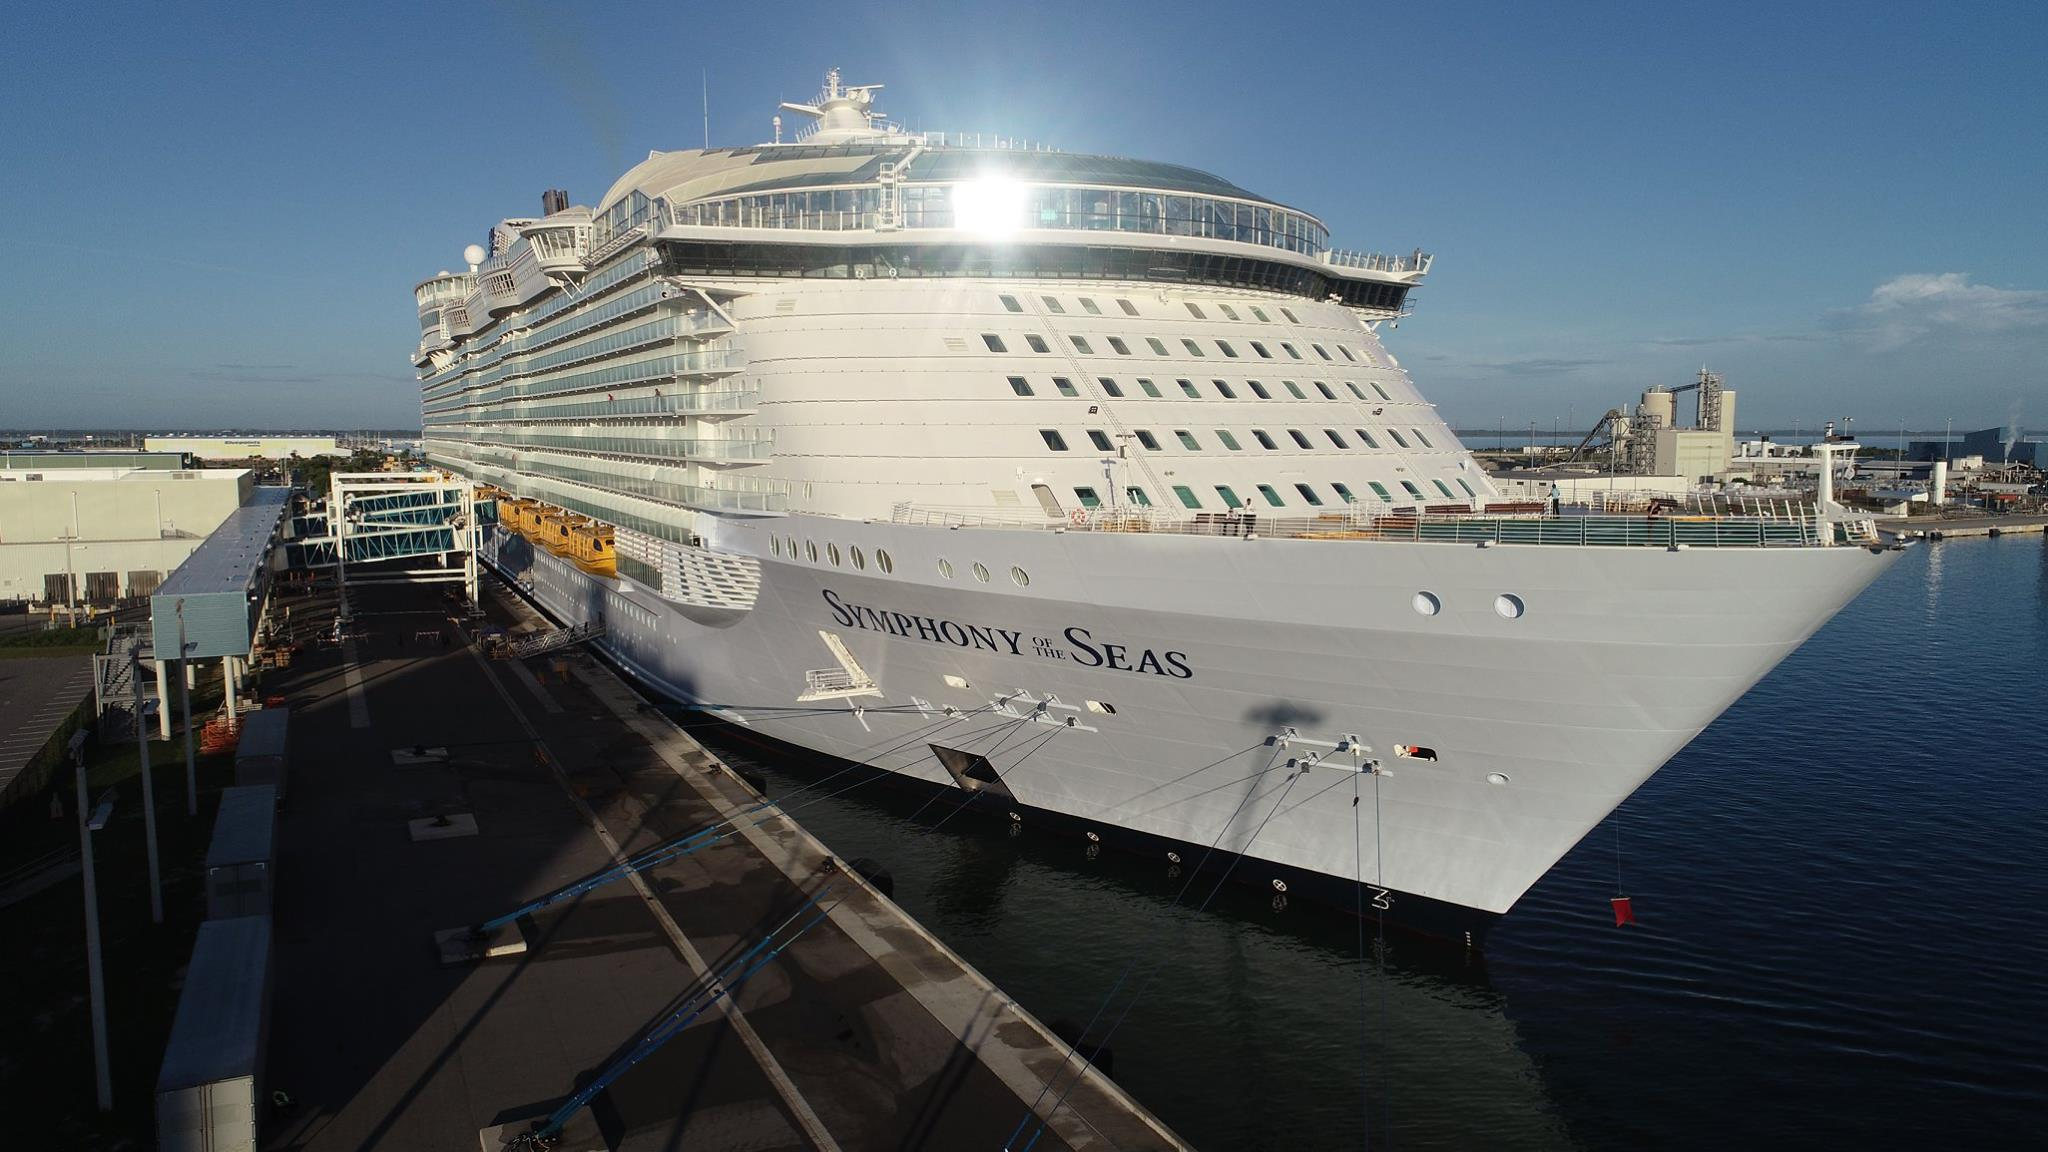 World's largest cruise ship docks at Port Canaveral